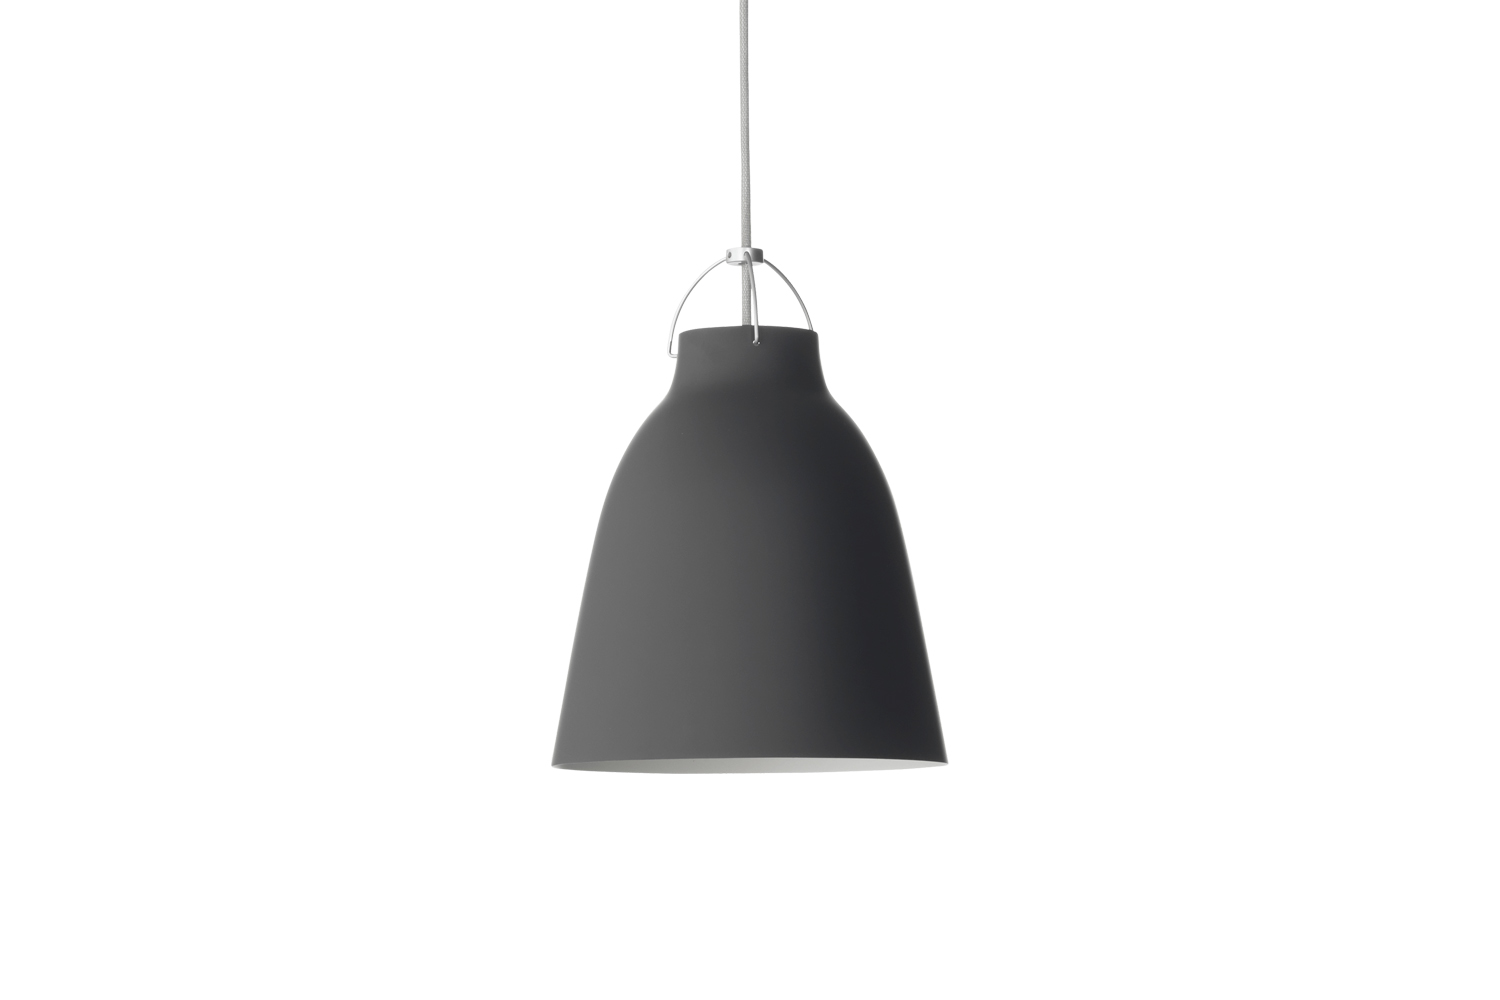 A longtime Remodelista favorite, the oversized Caravaggio Pendant Lamp designed by Cecile Manz is available in both glossy and matte black (shown); $5-$loading=